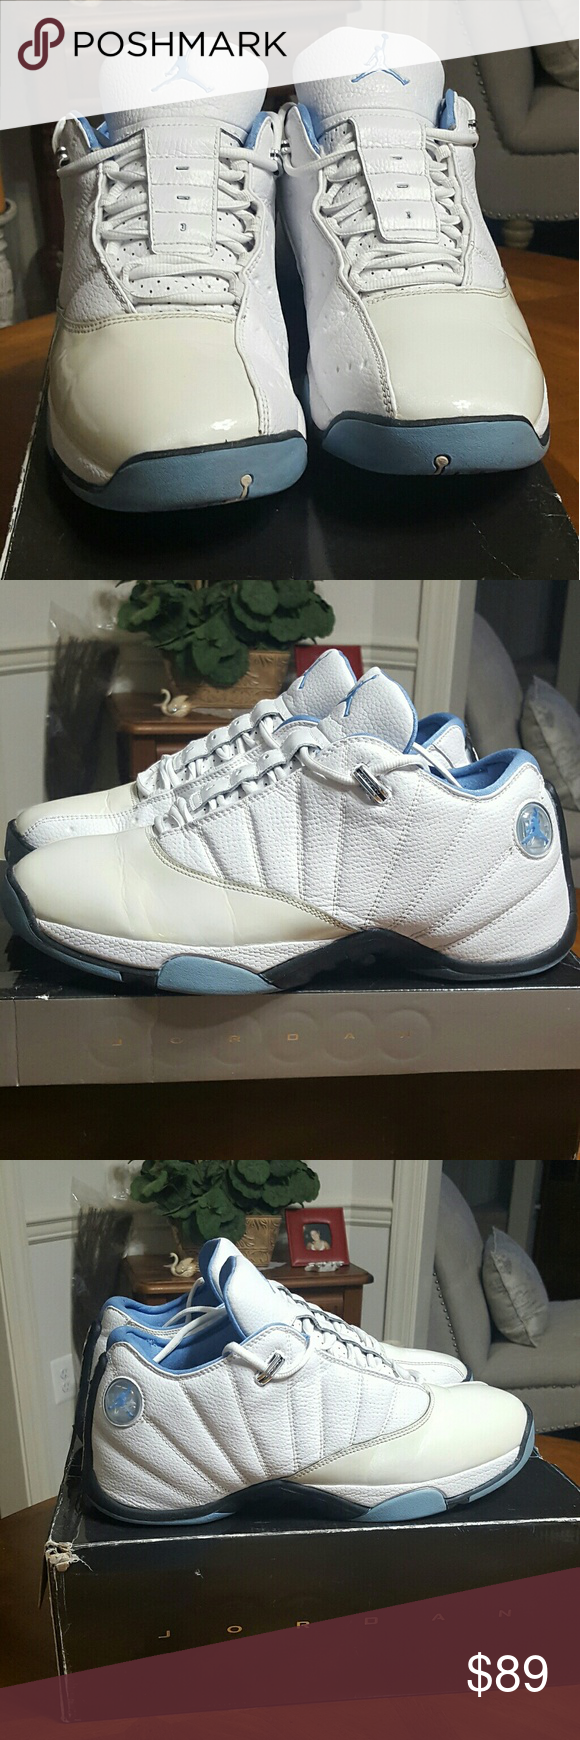 e4ec6d134ba9af EUC Air Jordan 12.5 Team Low shoes size 13 Great used condition White - university  blue - black 2008 release Clean without scuff marks Only ome very tiny ...